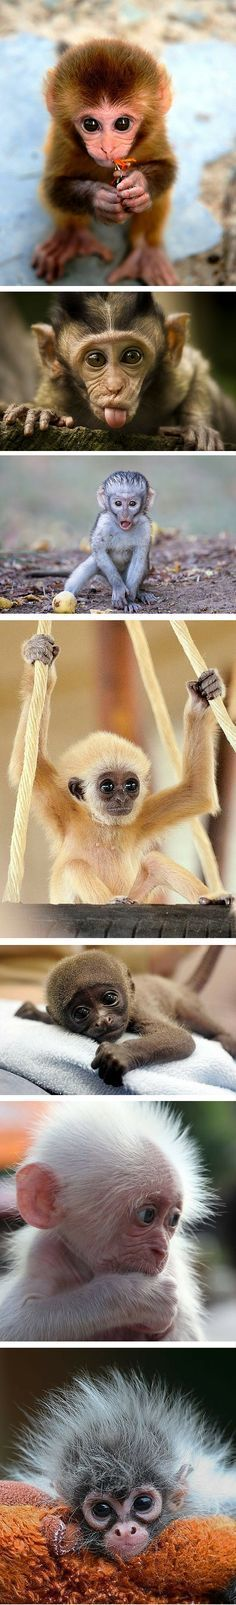 All baby animals are generally adorable but some seem to be extra cute  like for instance baby monkeys.